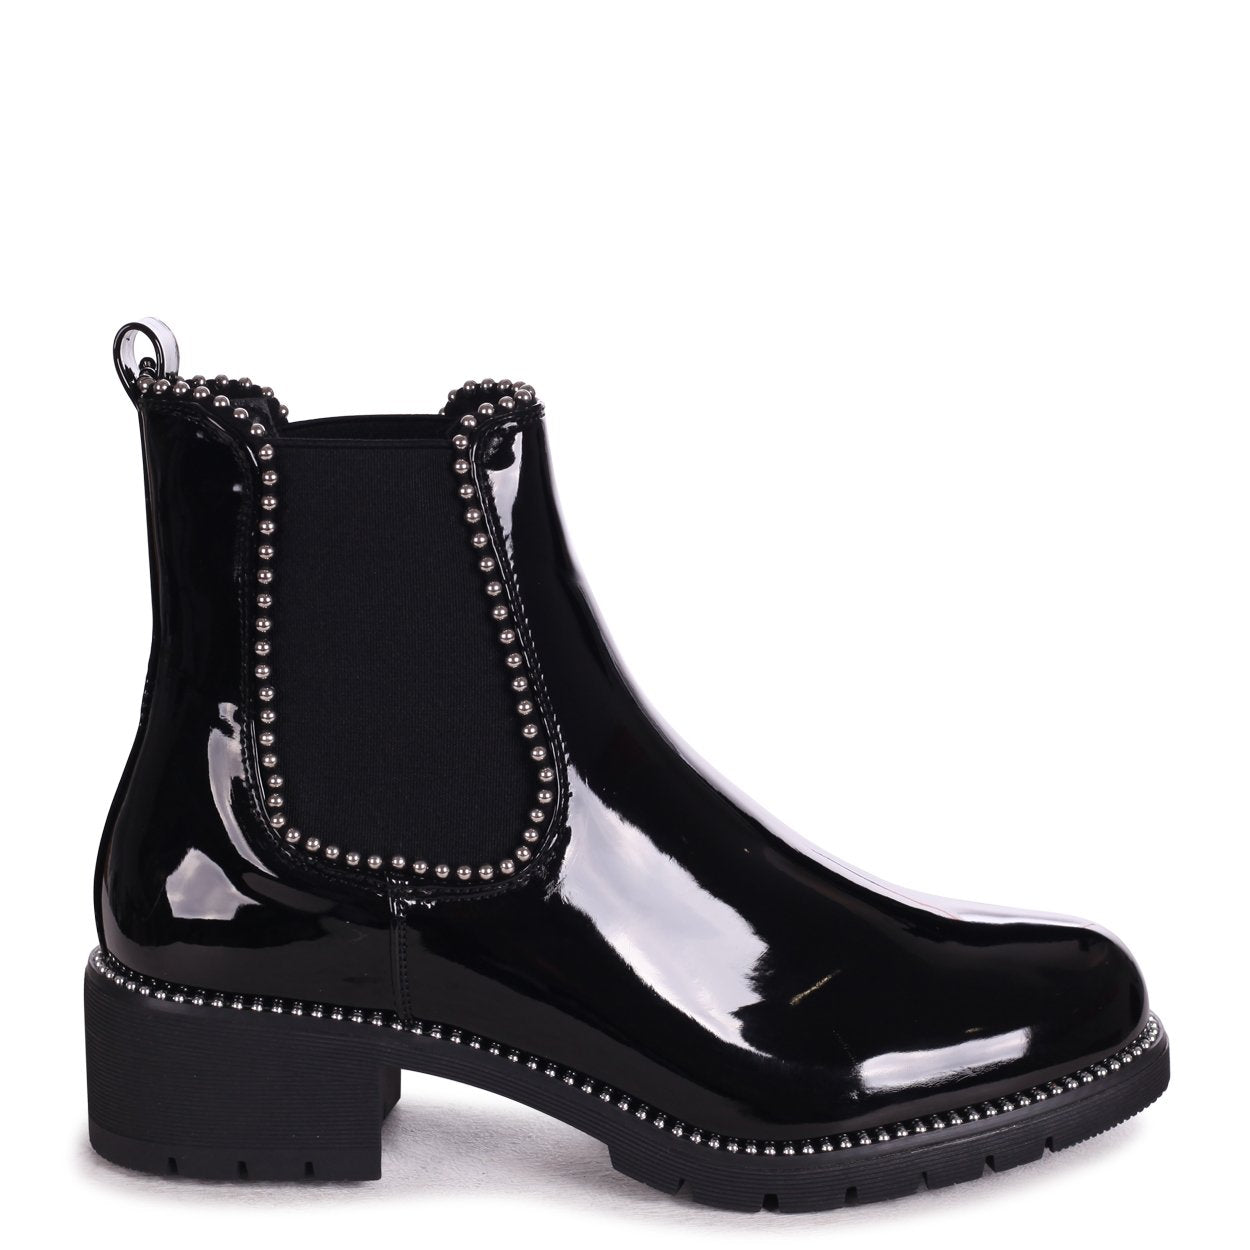 ALANNA - Black Patent Classic Chelsea Boot With Studded Detail